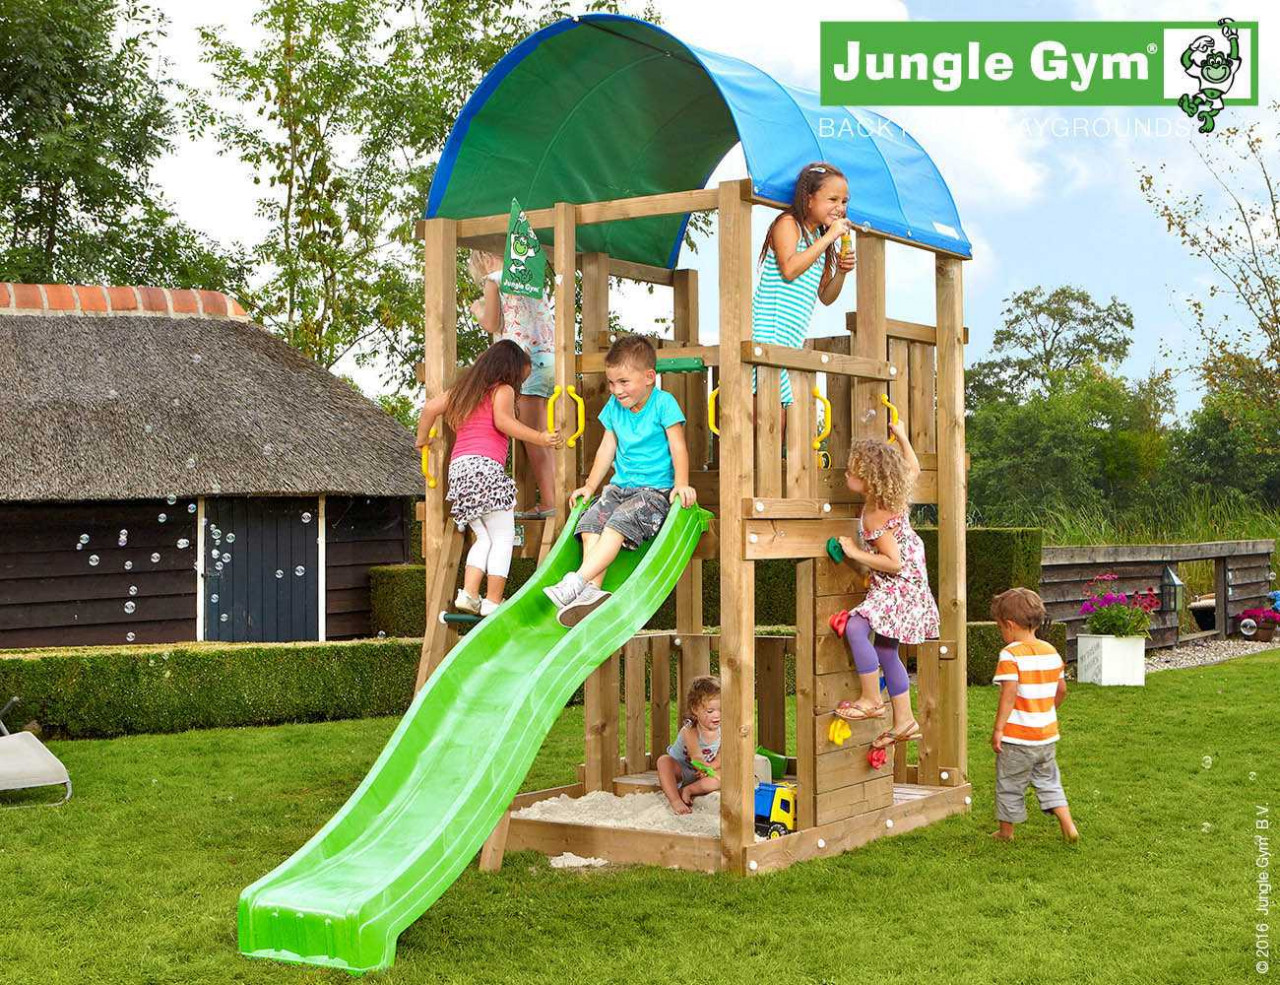 Spielturm Jungle Gym Farm in Douglasie natur